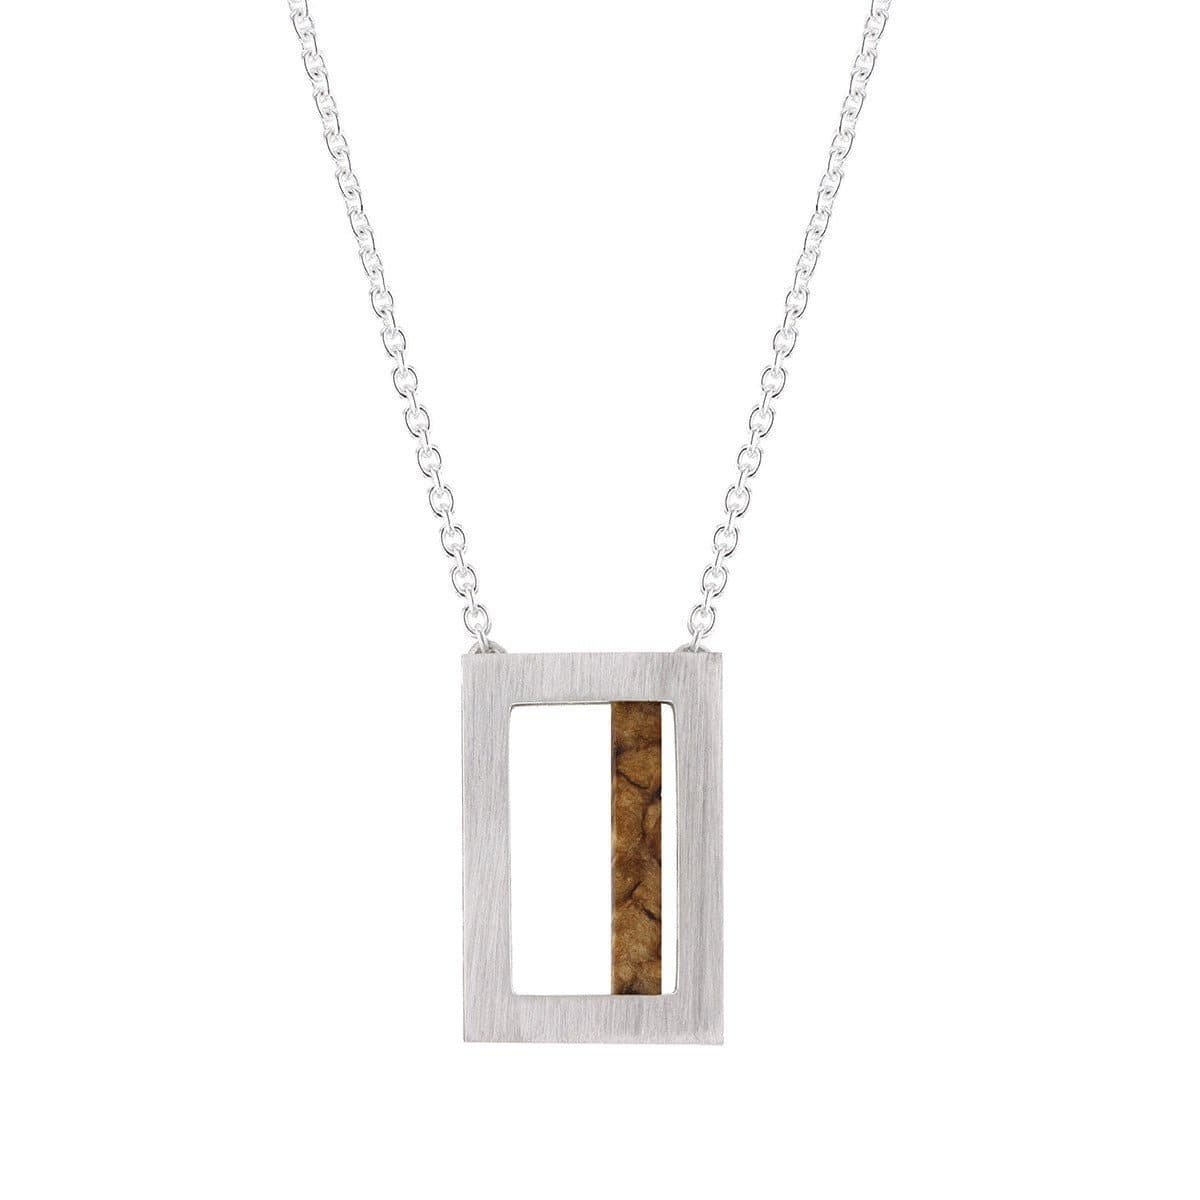 Silver Necklace With A Piece Of Birch And Cable Chain